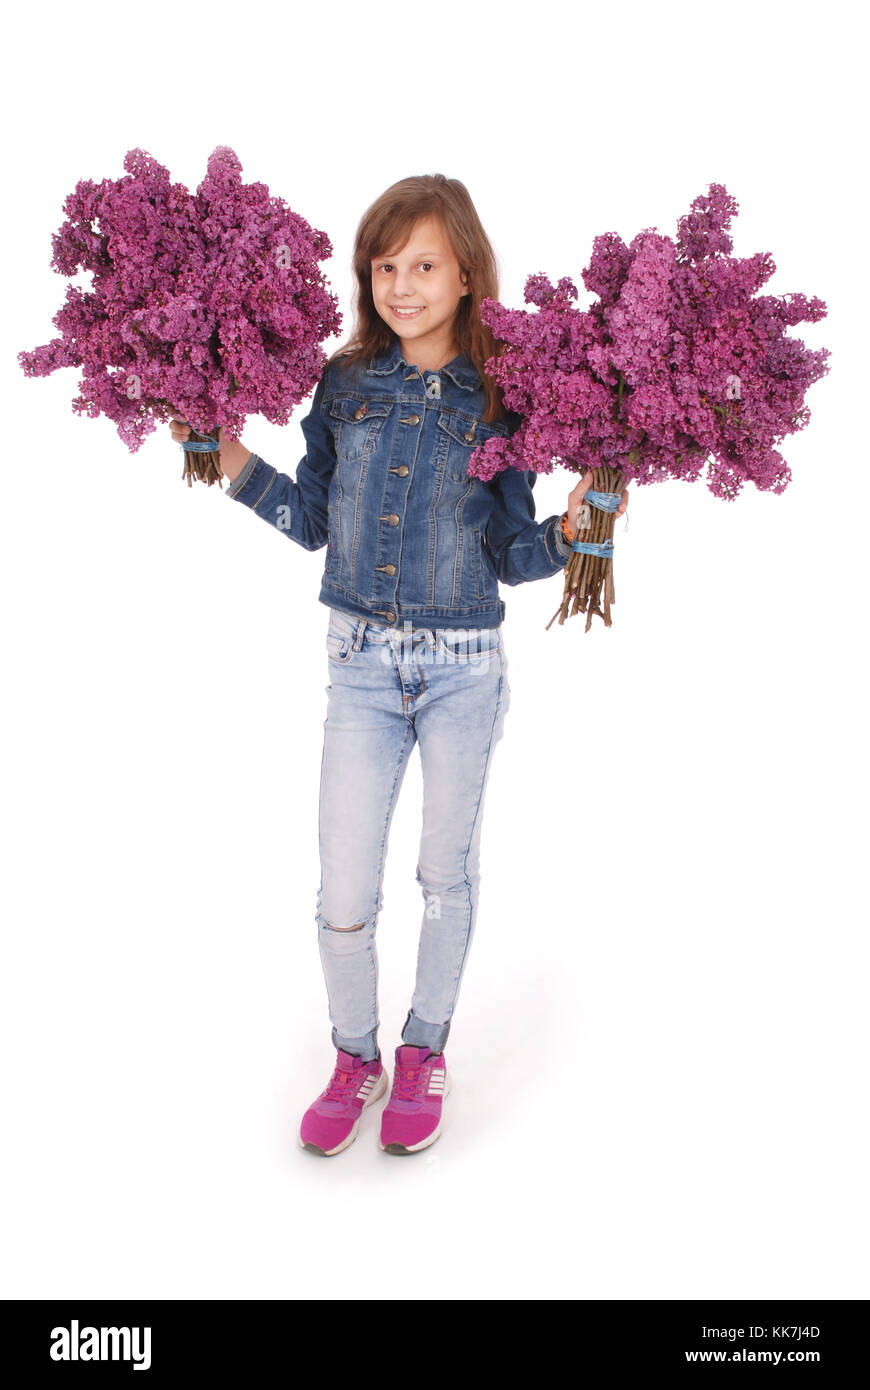 Teenage girl standing with lilac in both hands. Isolated on white background - Stock Image